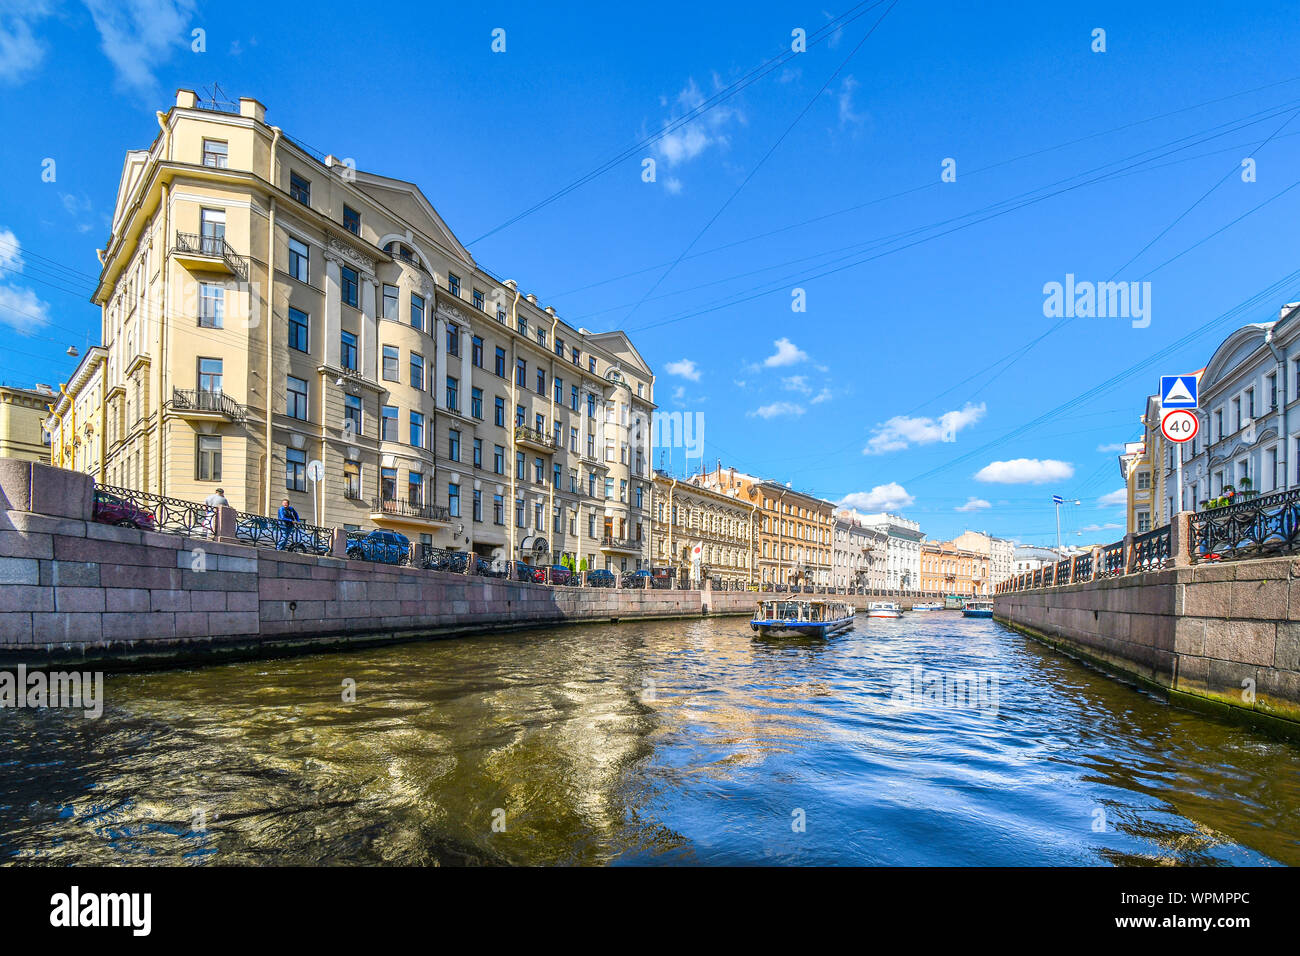 A tour boat cruises down one of the many canals in the historic center of St. Petersburg, Russia. Stock Photo